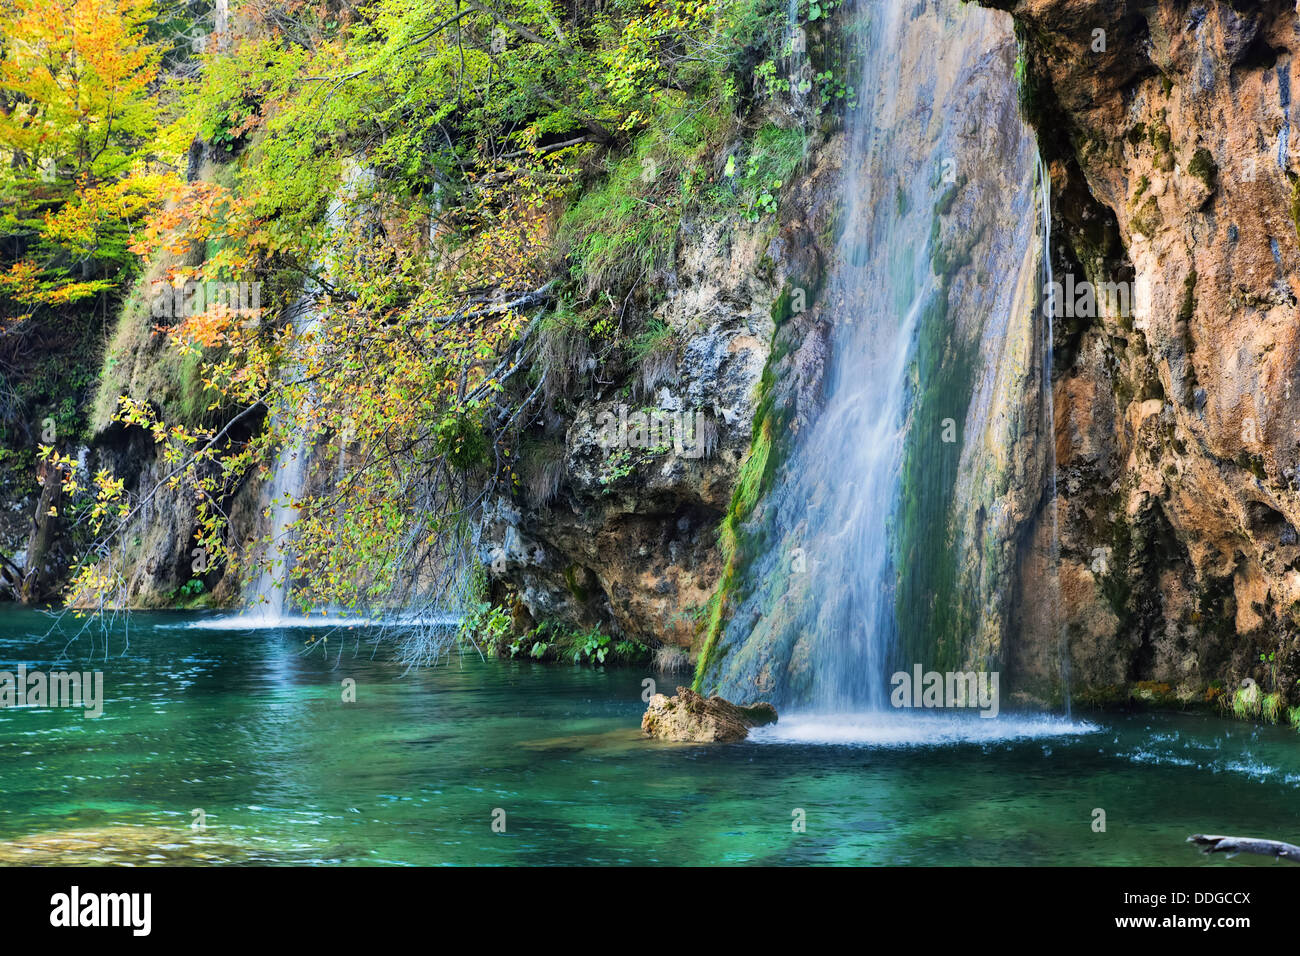 Waterfall in forest. Crystal clear water. Plitvice Lakes National Park, Croatia - Stock Image